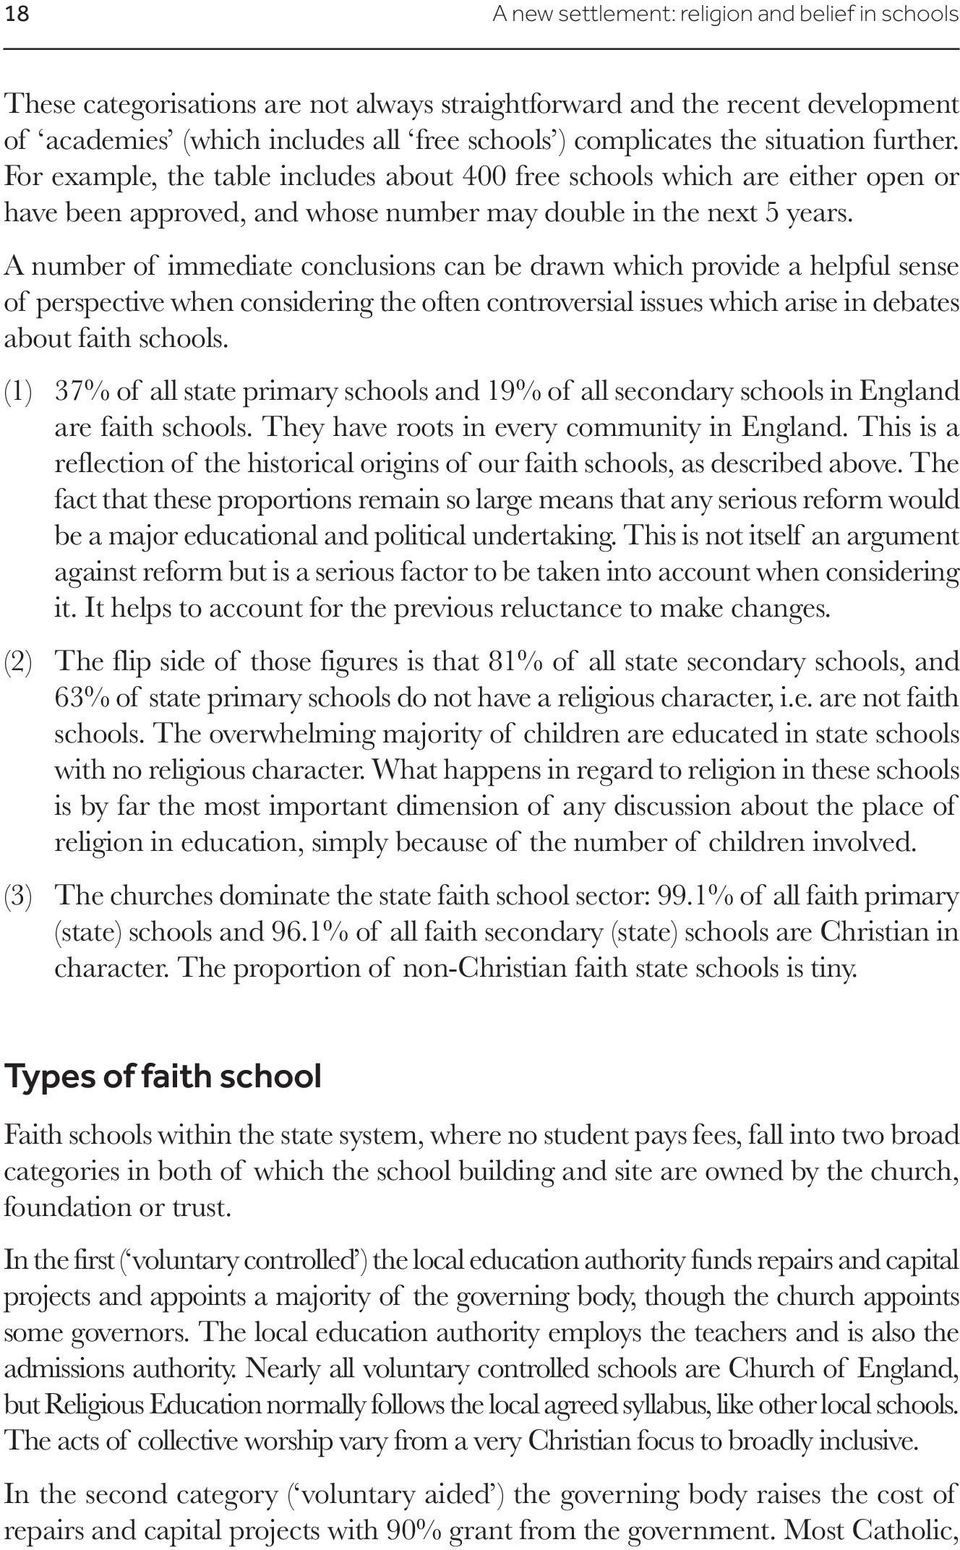 A number of immediate conclusions can be drawn which provide a helpful sense of perspective when considering the often controversial issues which arise in debates about faith schools.